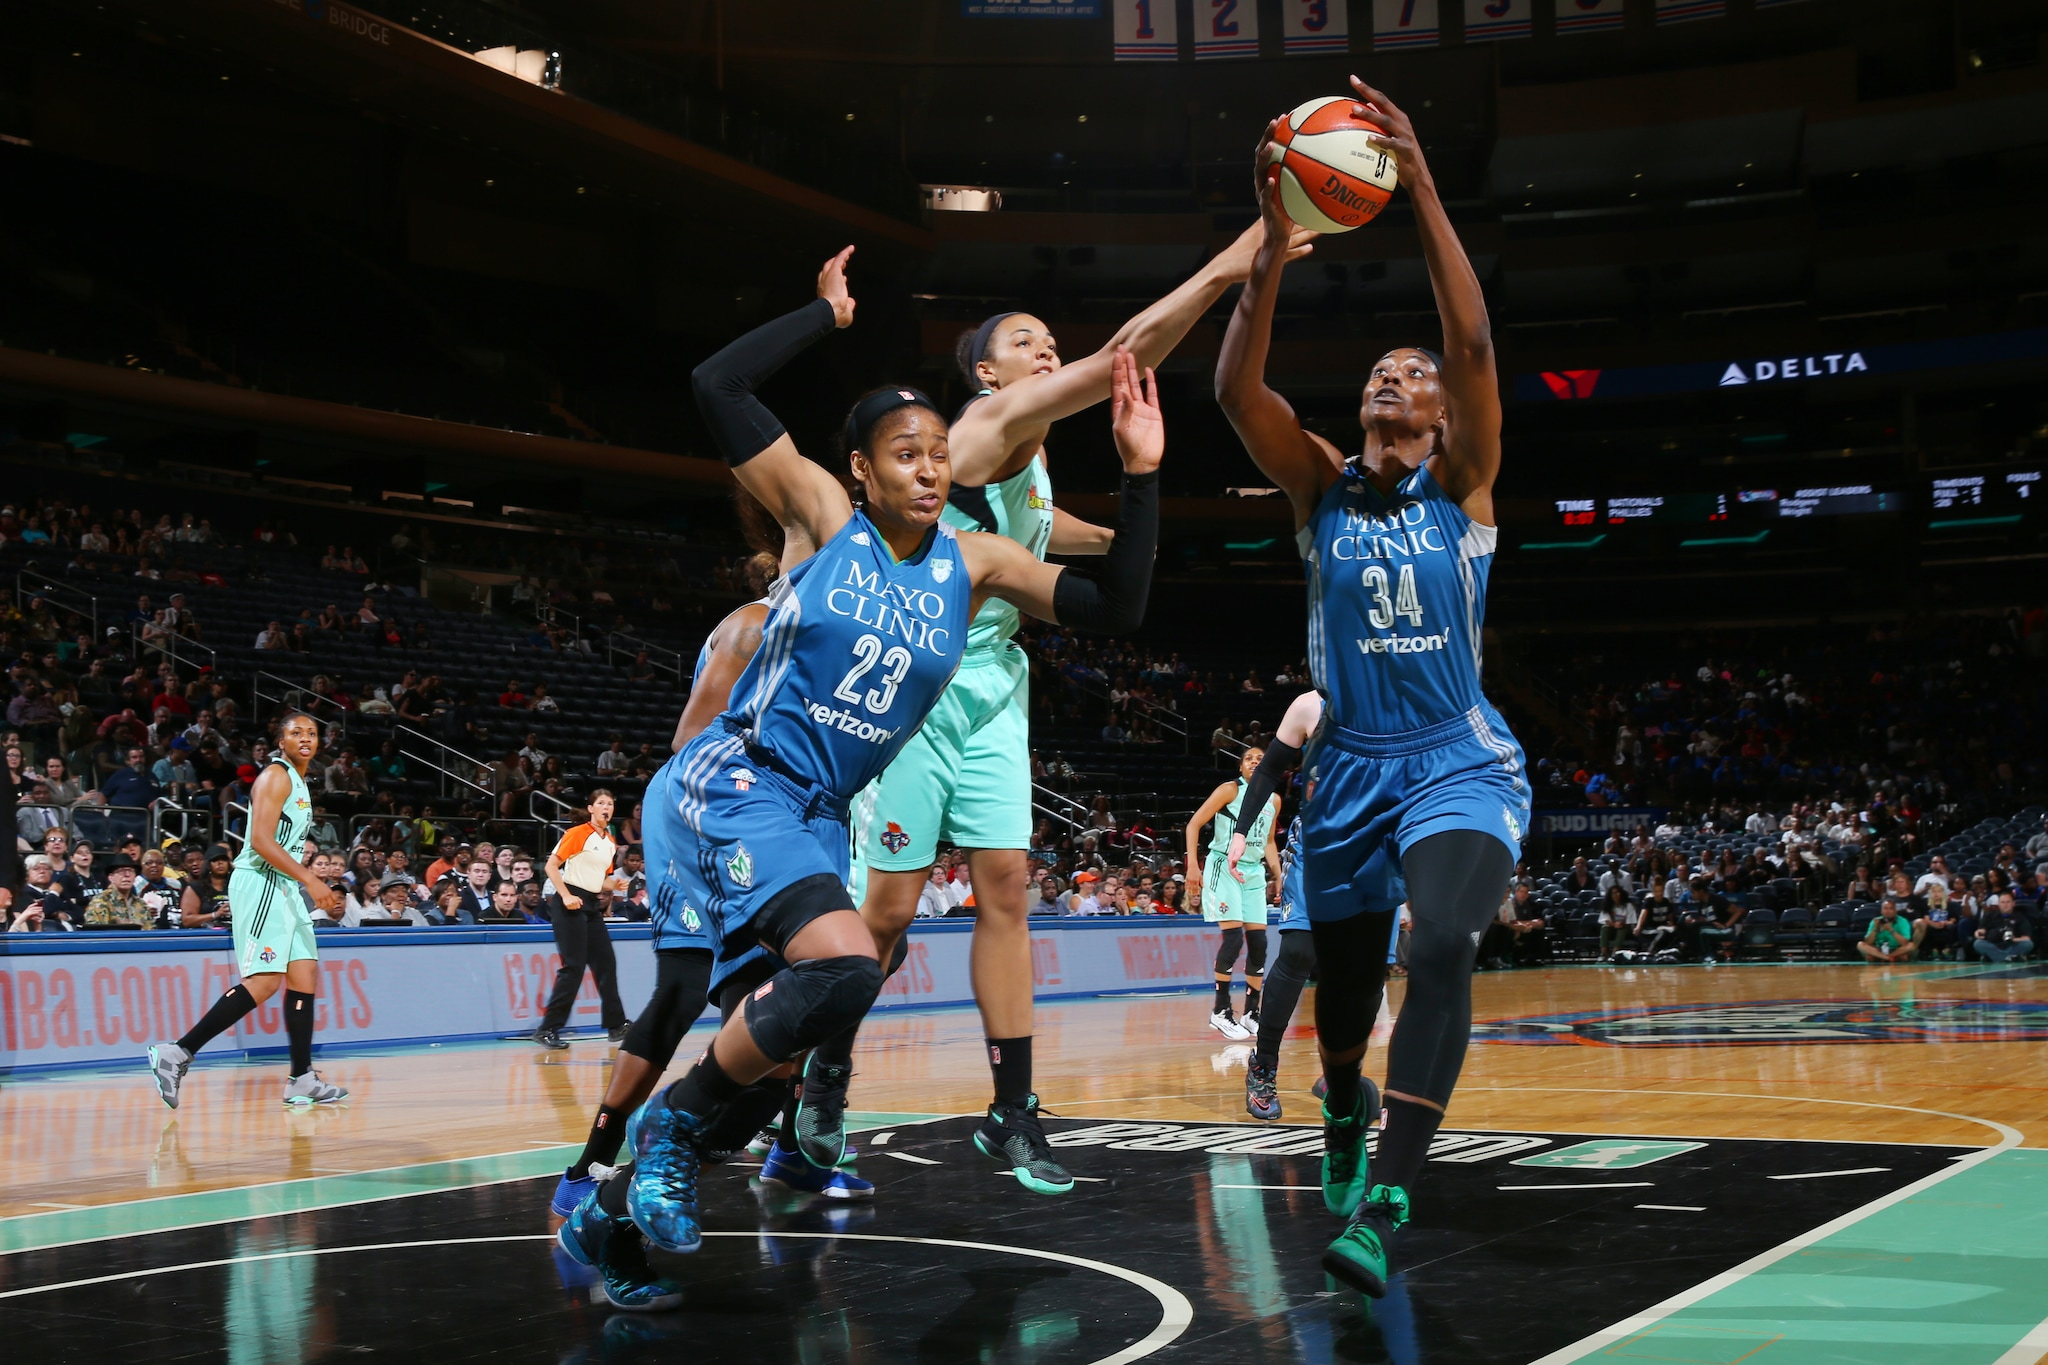 NEW YORK, NY - MAY 31: Sylvia Fowles #34 of the Minnesota Lynx grabs the rebound against the New York Liberty during the game on May 31, 2016 at Madison Square Garden in New York, New York. NOTE TO USER: User expressly acknowledges and agrees that, by downloading and or using this Photograph, user is consenting to the terms and conditions of the Getty Images License Agreement. Mandatory Copyright Notice: Copyright 2016 NBAE (Photo by Mike Stobe/NBAE via Getty Images)